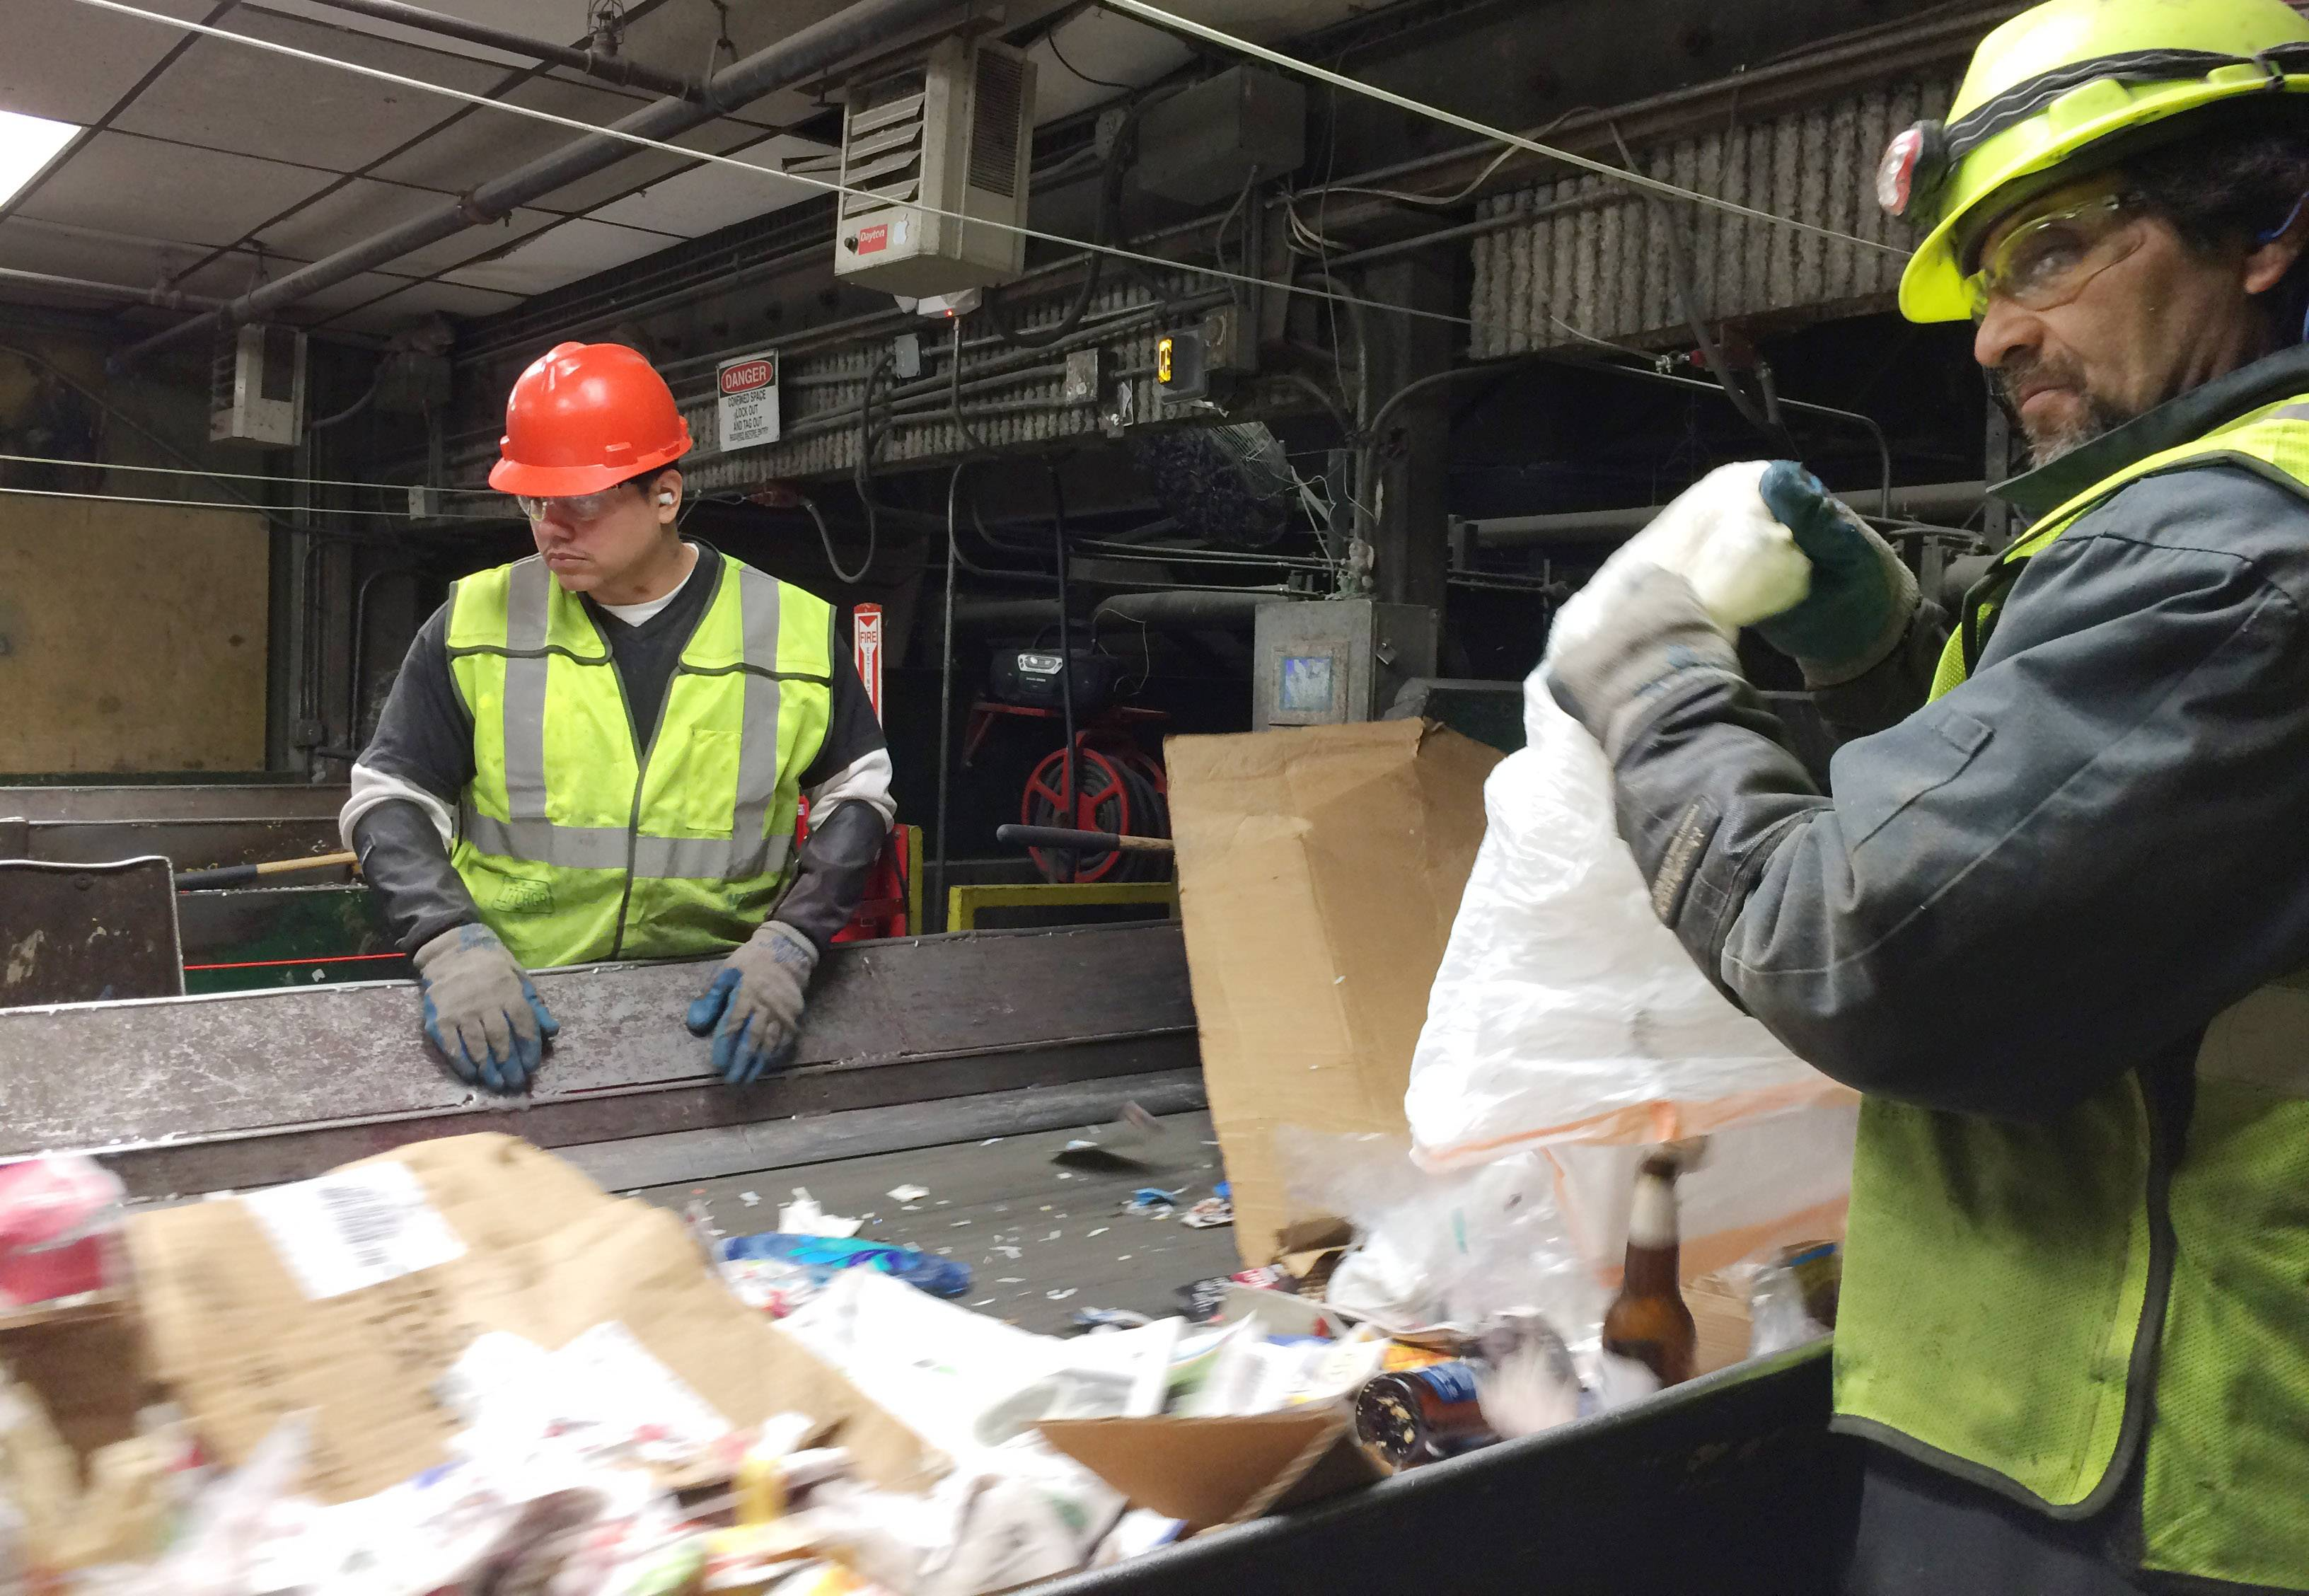 Workers remove plastic and other contaminants from incoming recyclables at Waste Management's processing facility in Grayslake. Waste industry experts say the push is on for cleaner recyclables.